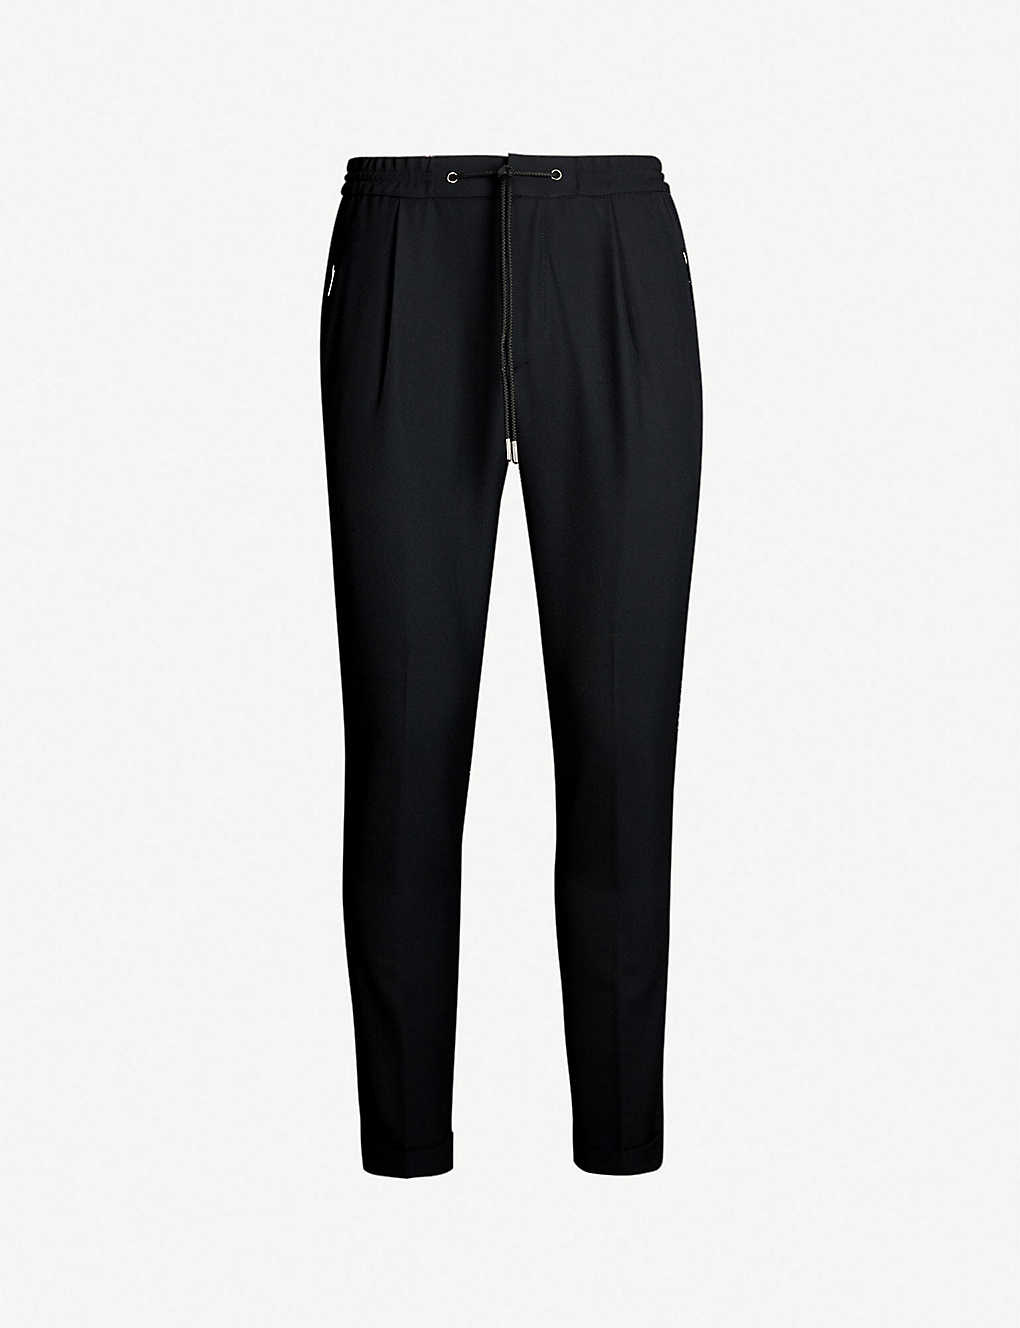 262c82b3974 THE KOOPLES - Slim-fit skinny twill trousers